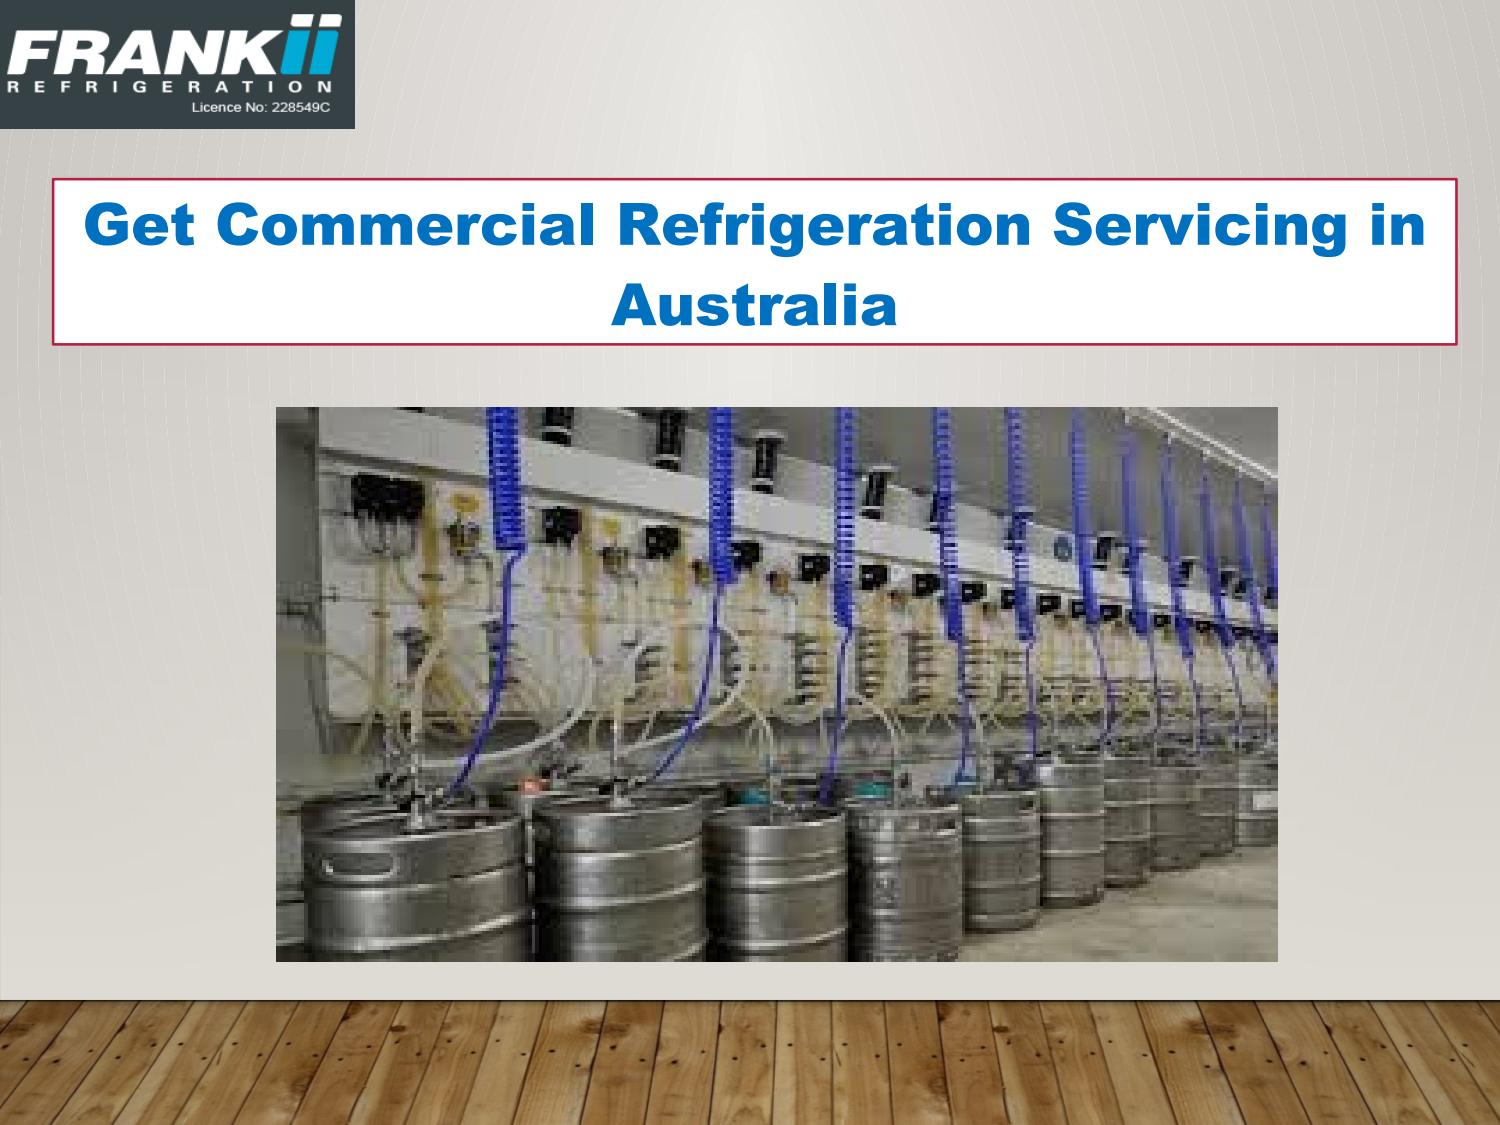 Get Commercial Refrigeration Servicing in Australia by